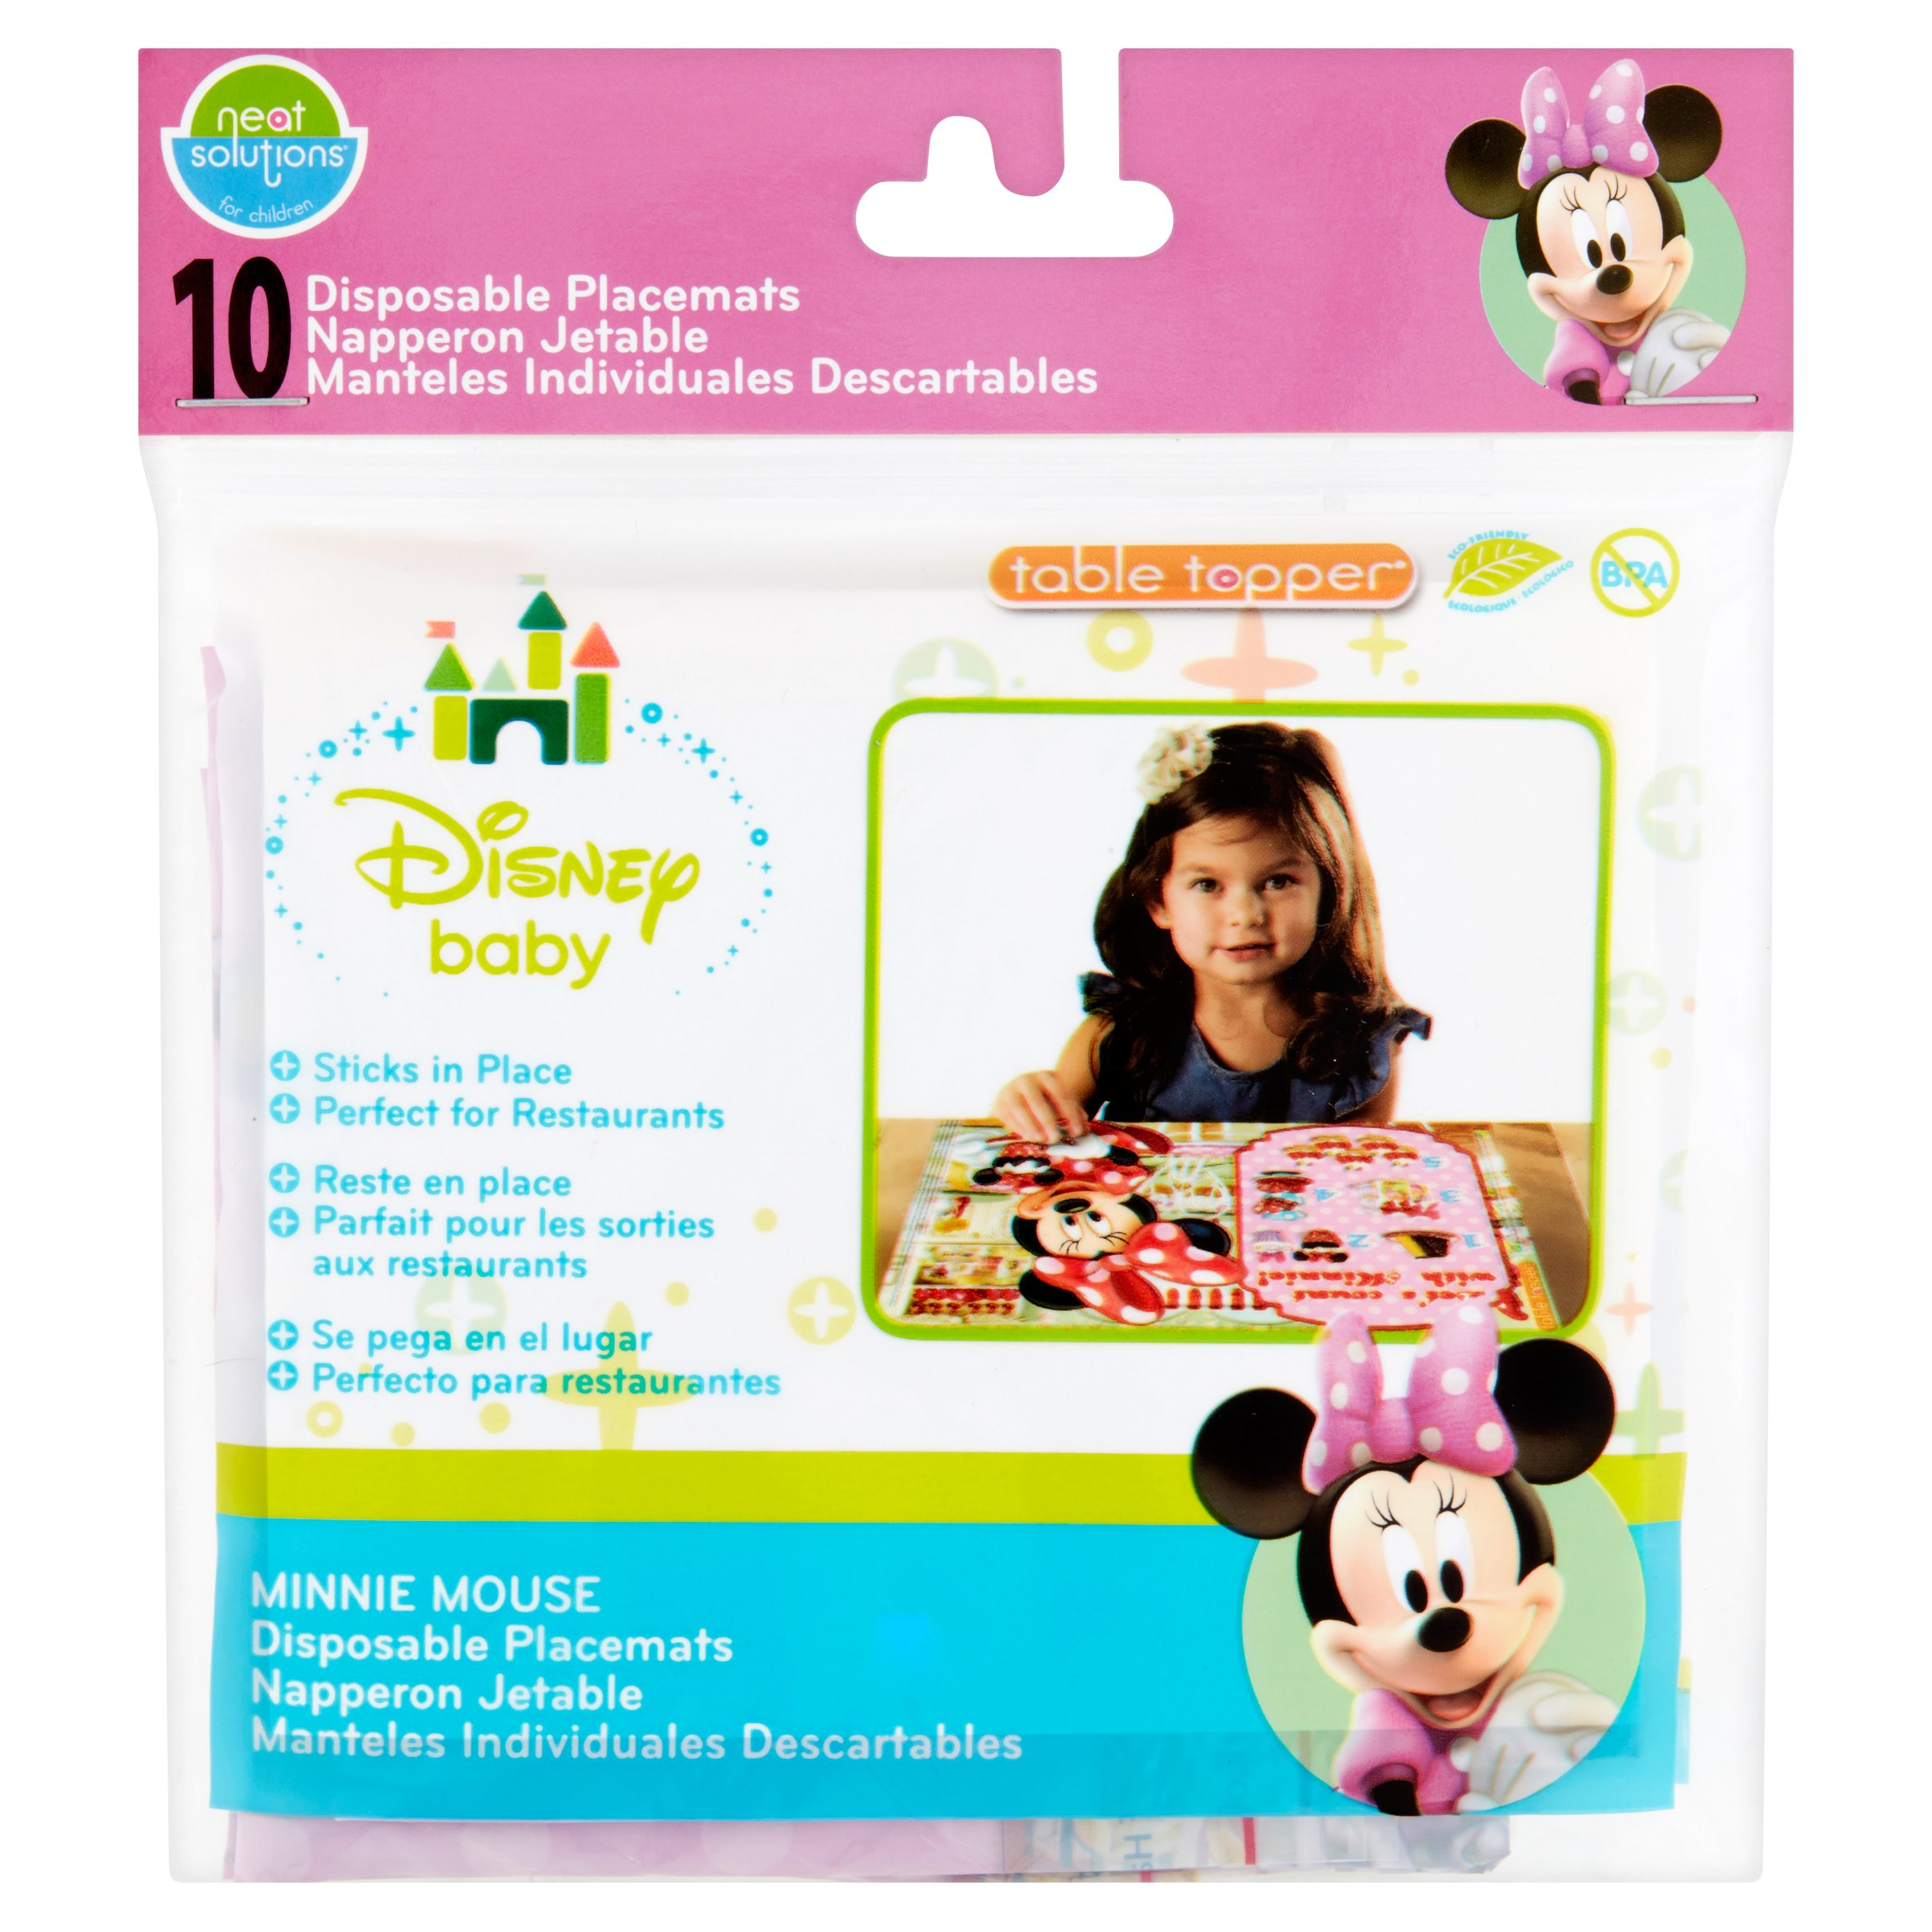 Neat Solutions for Children Disney Baby Table Topper Disposable Placemats, 10 count